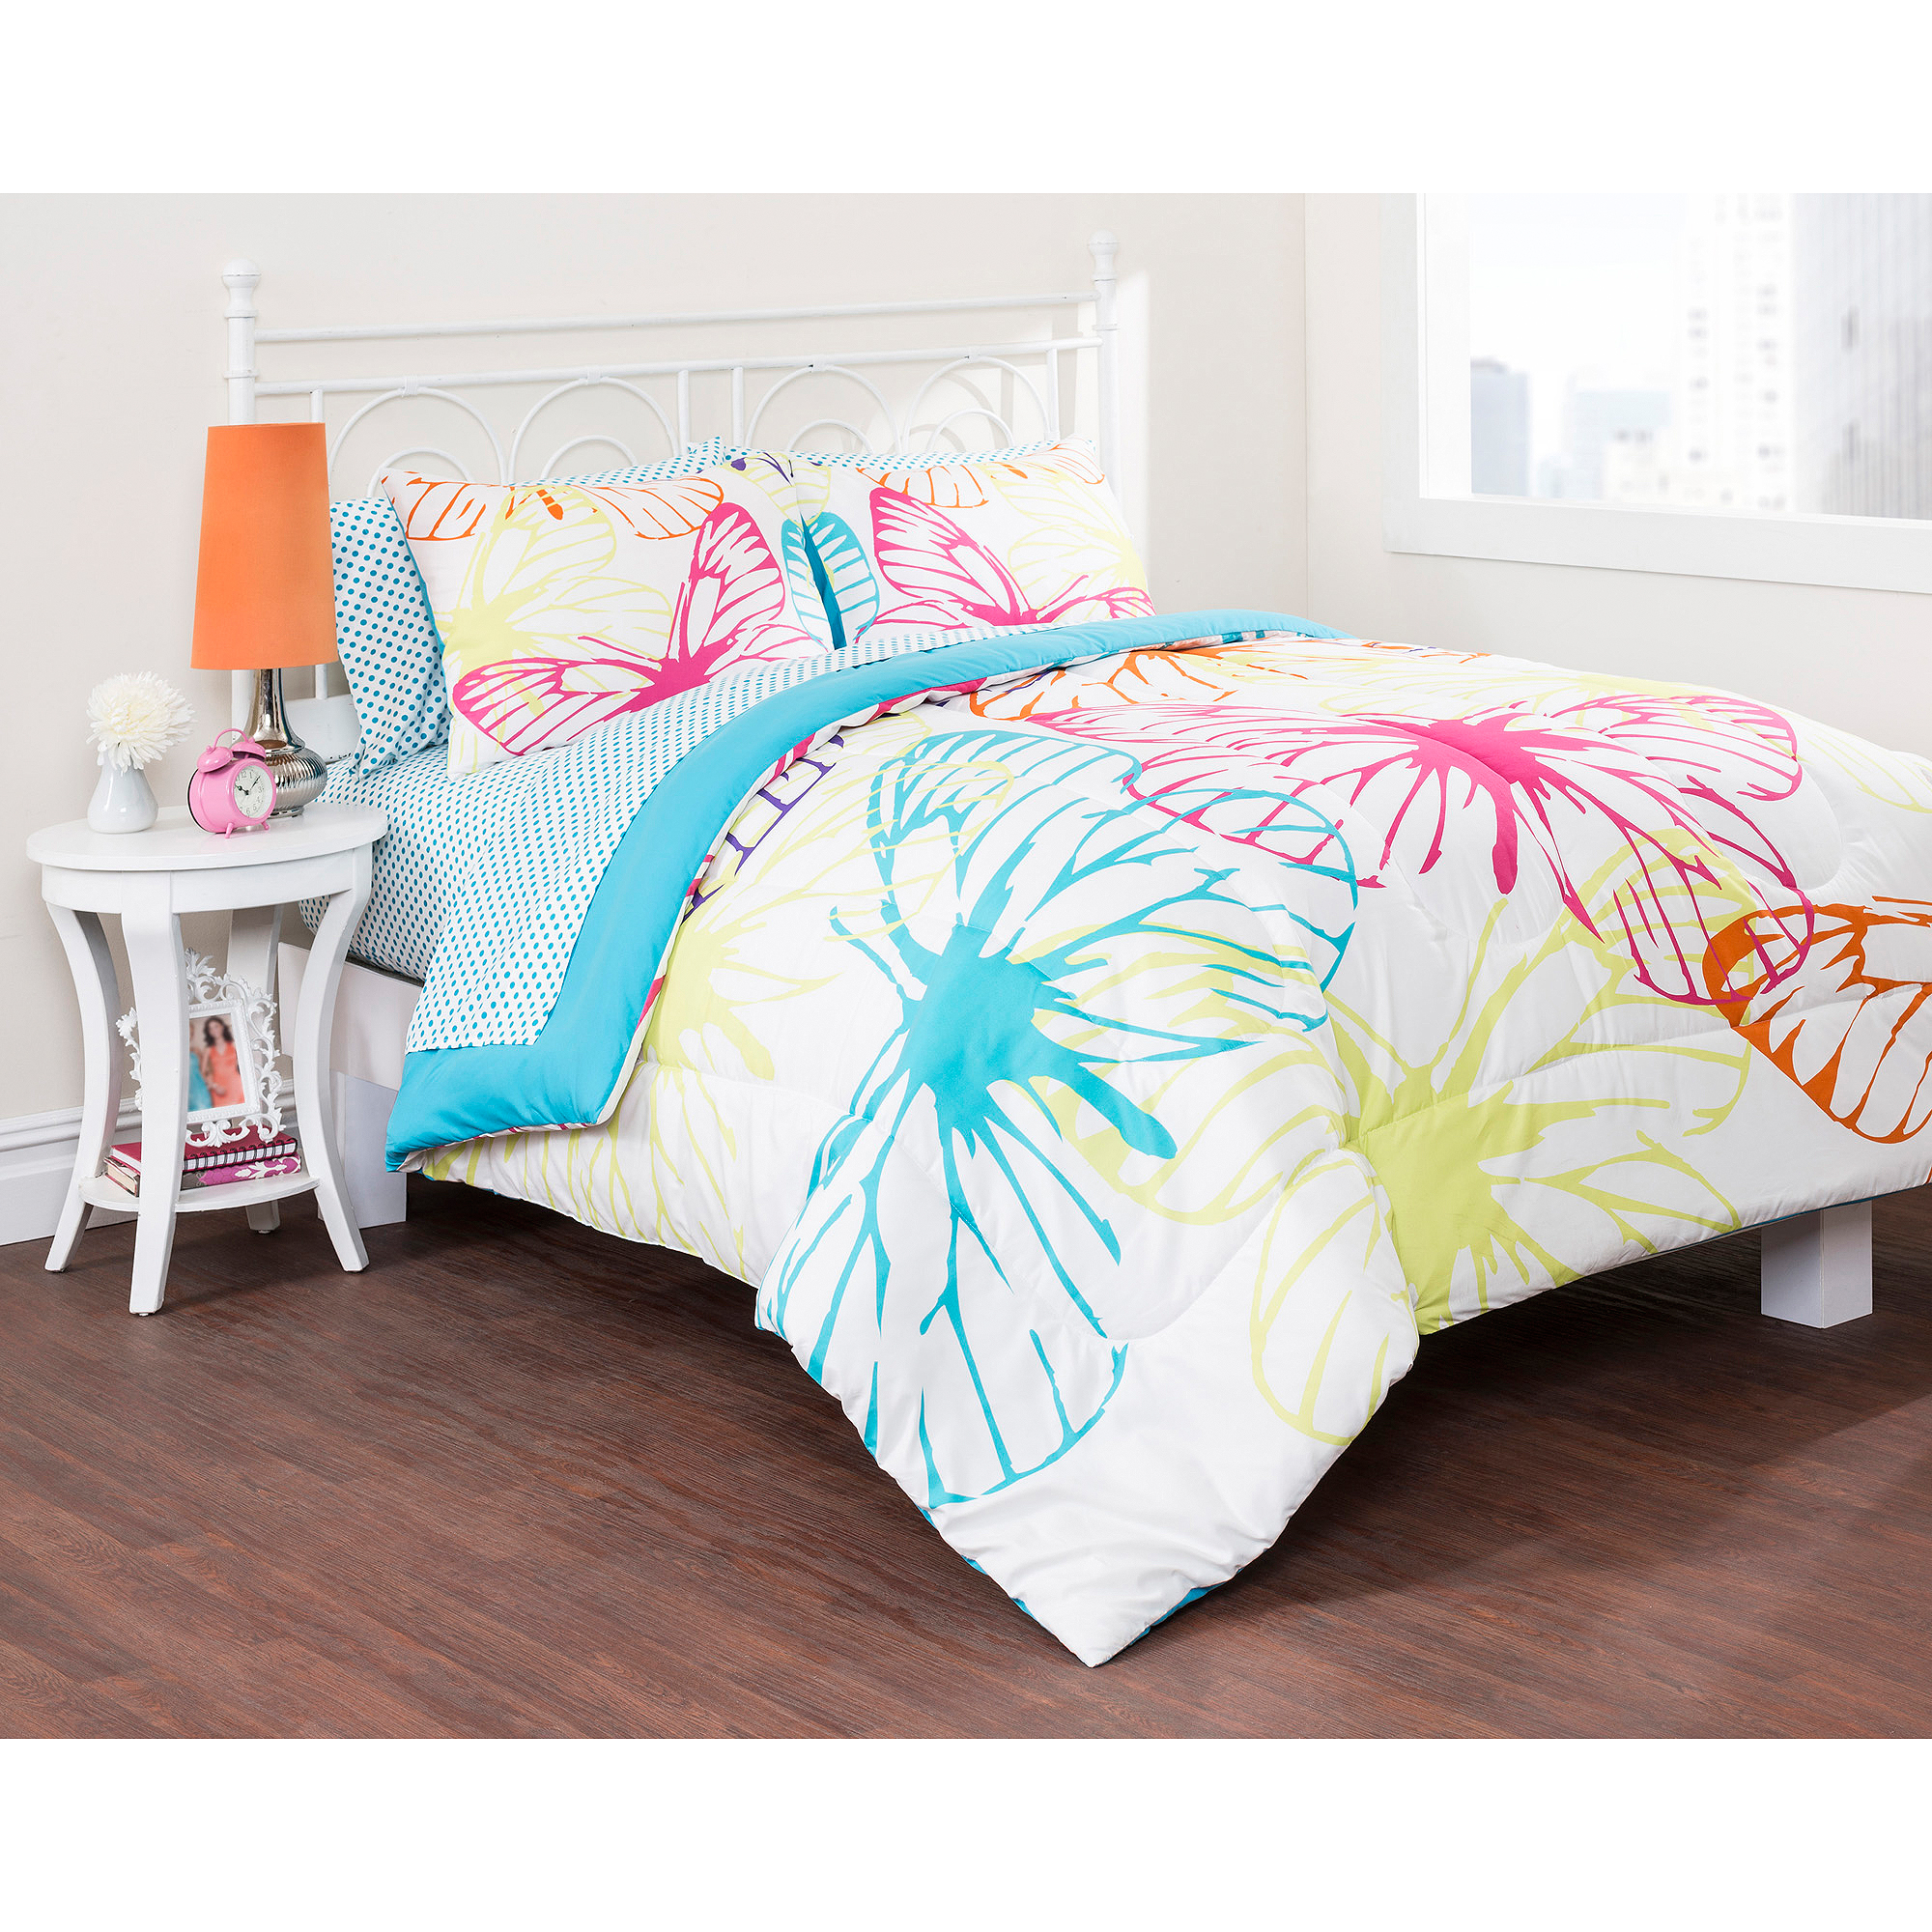 pink butterfly bedroom latitude butterfly silhouette bed in a bag bedding set 12858